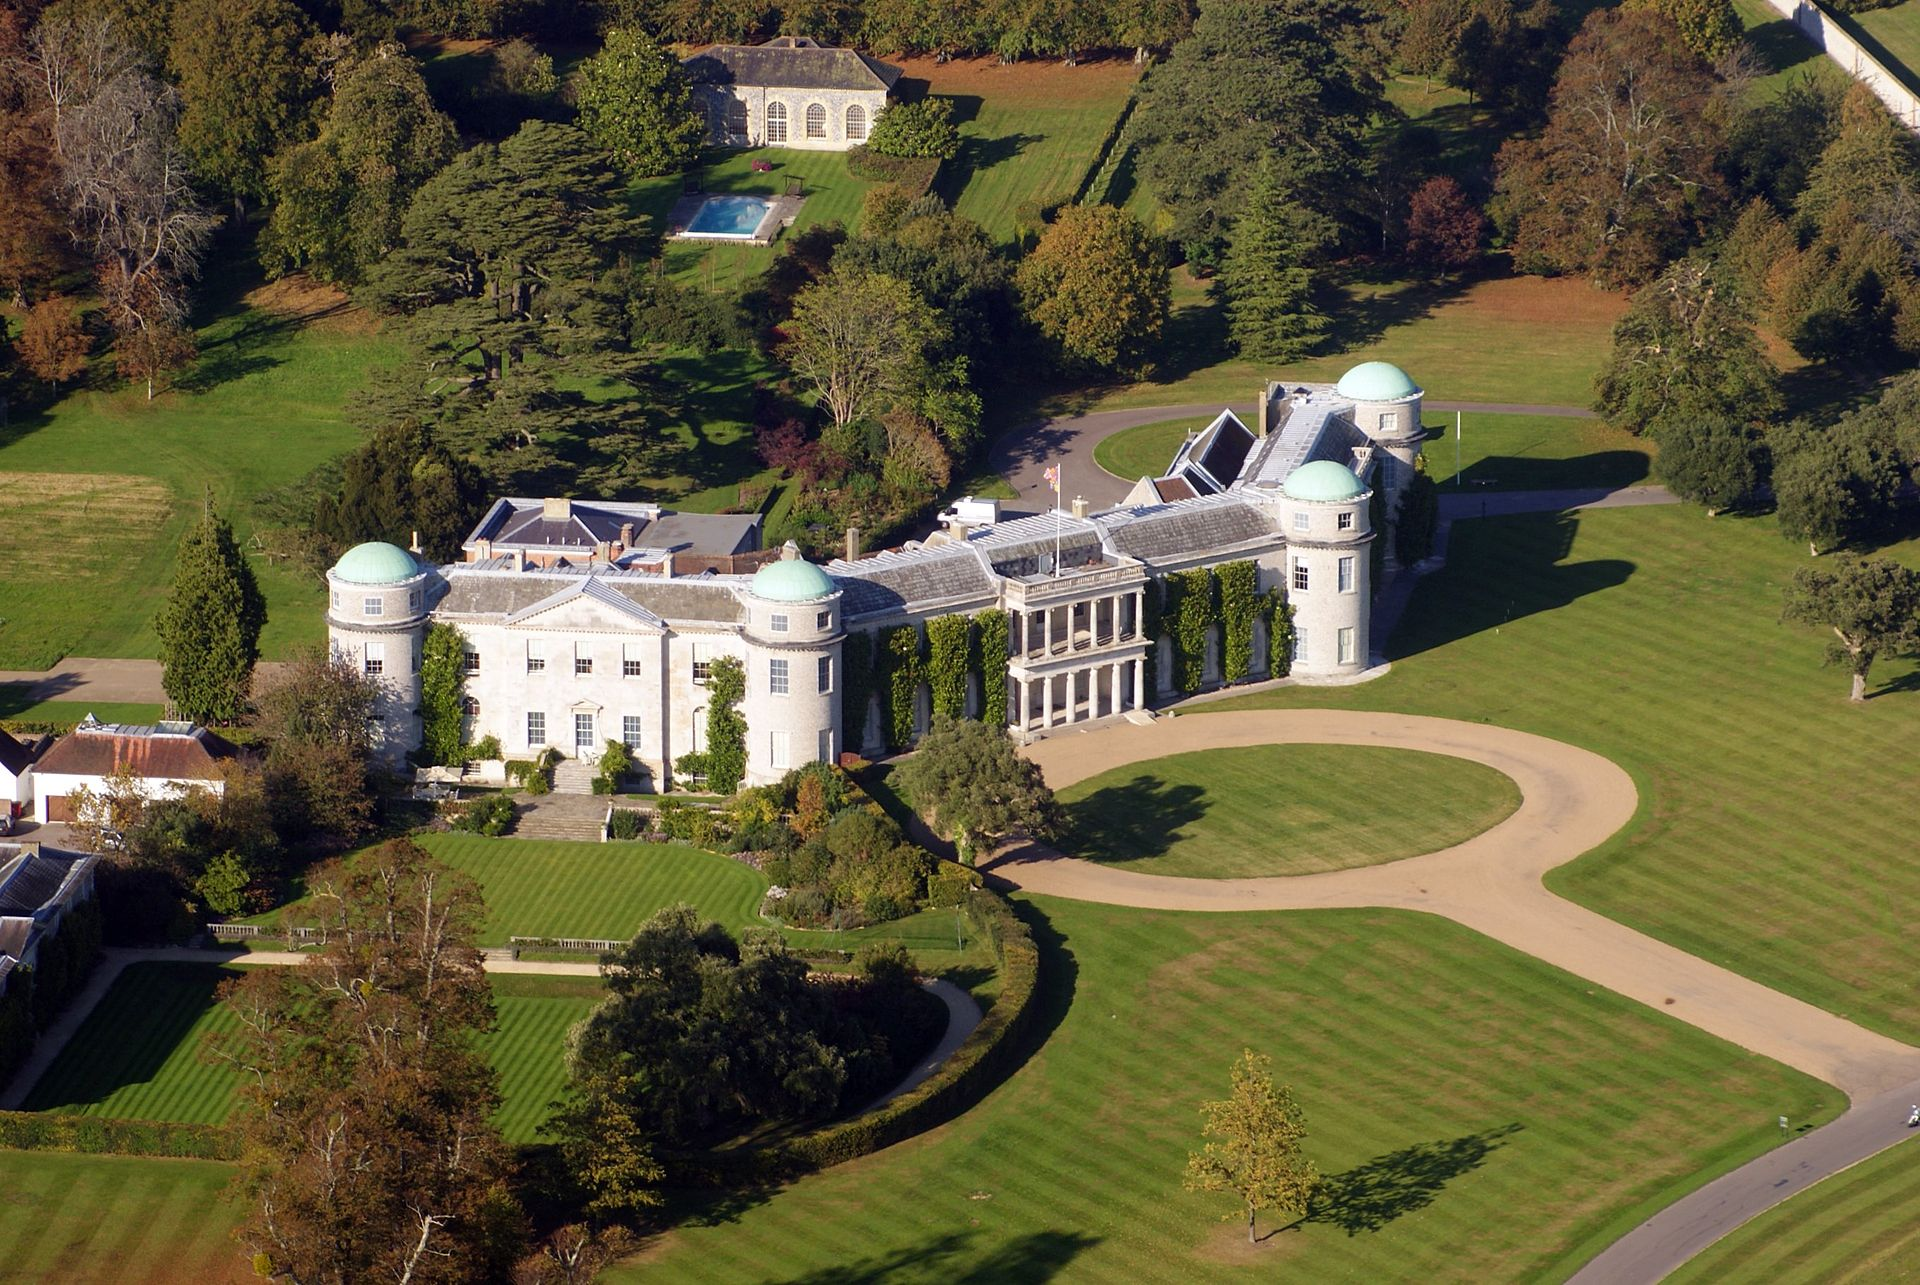 Goodwood House - Lord March residence